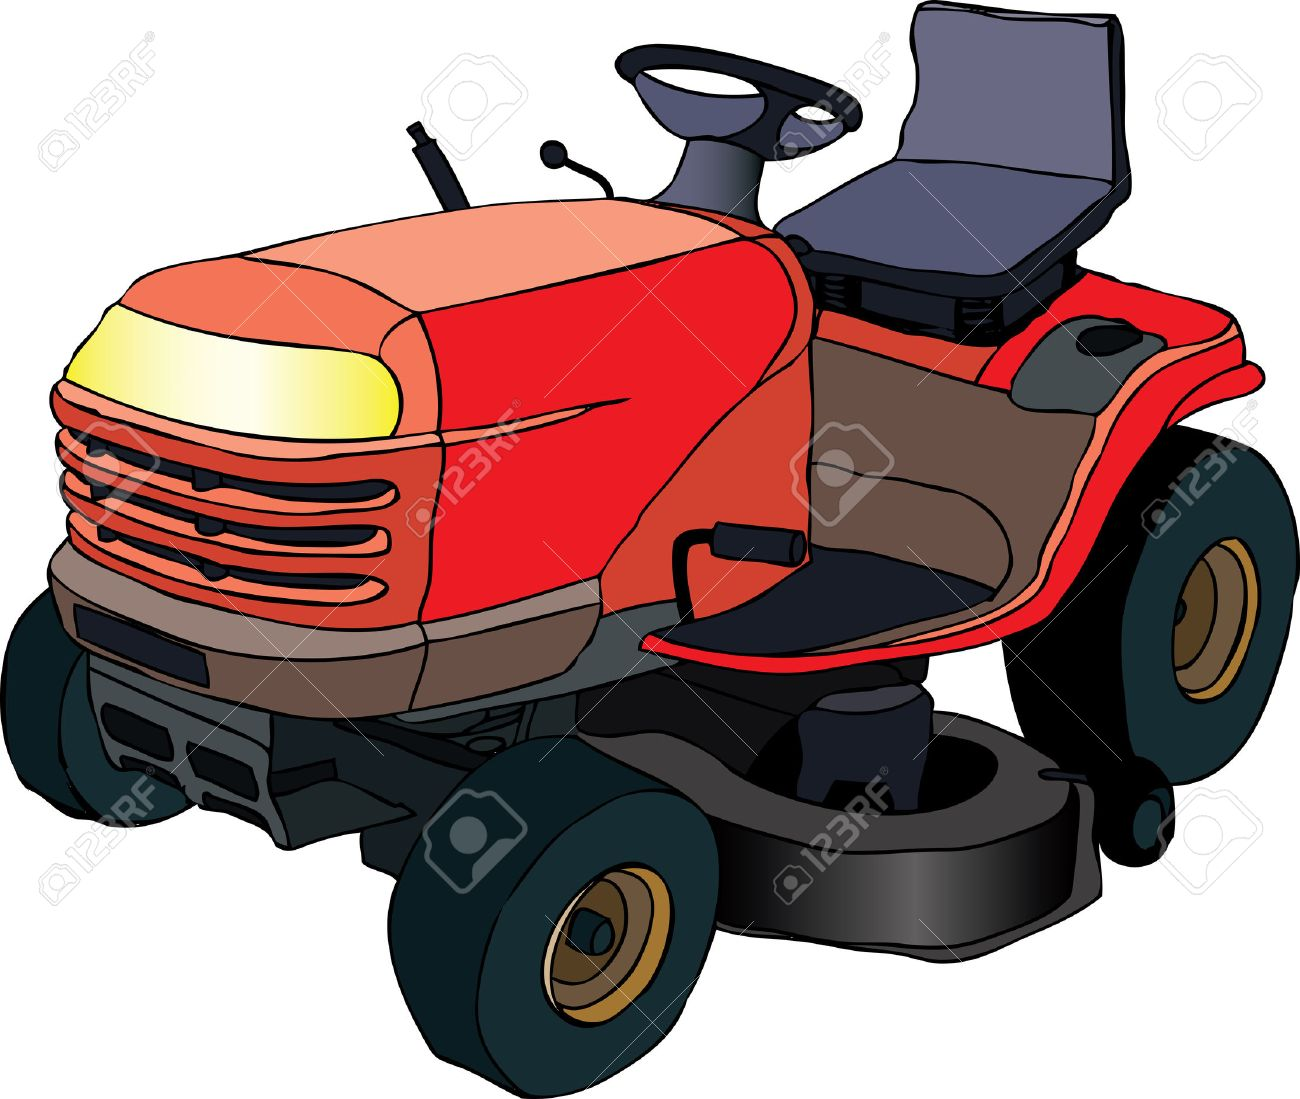 Riding Lawn Mower Illustration Illustration of Red Lawn Mower